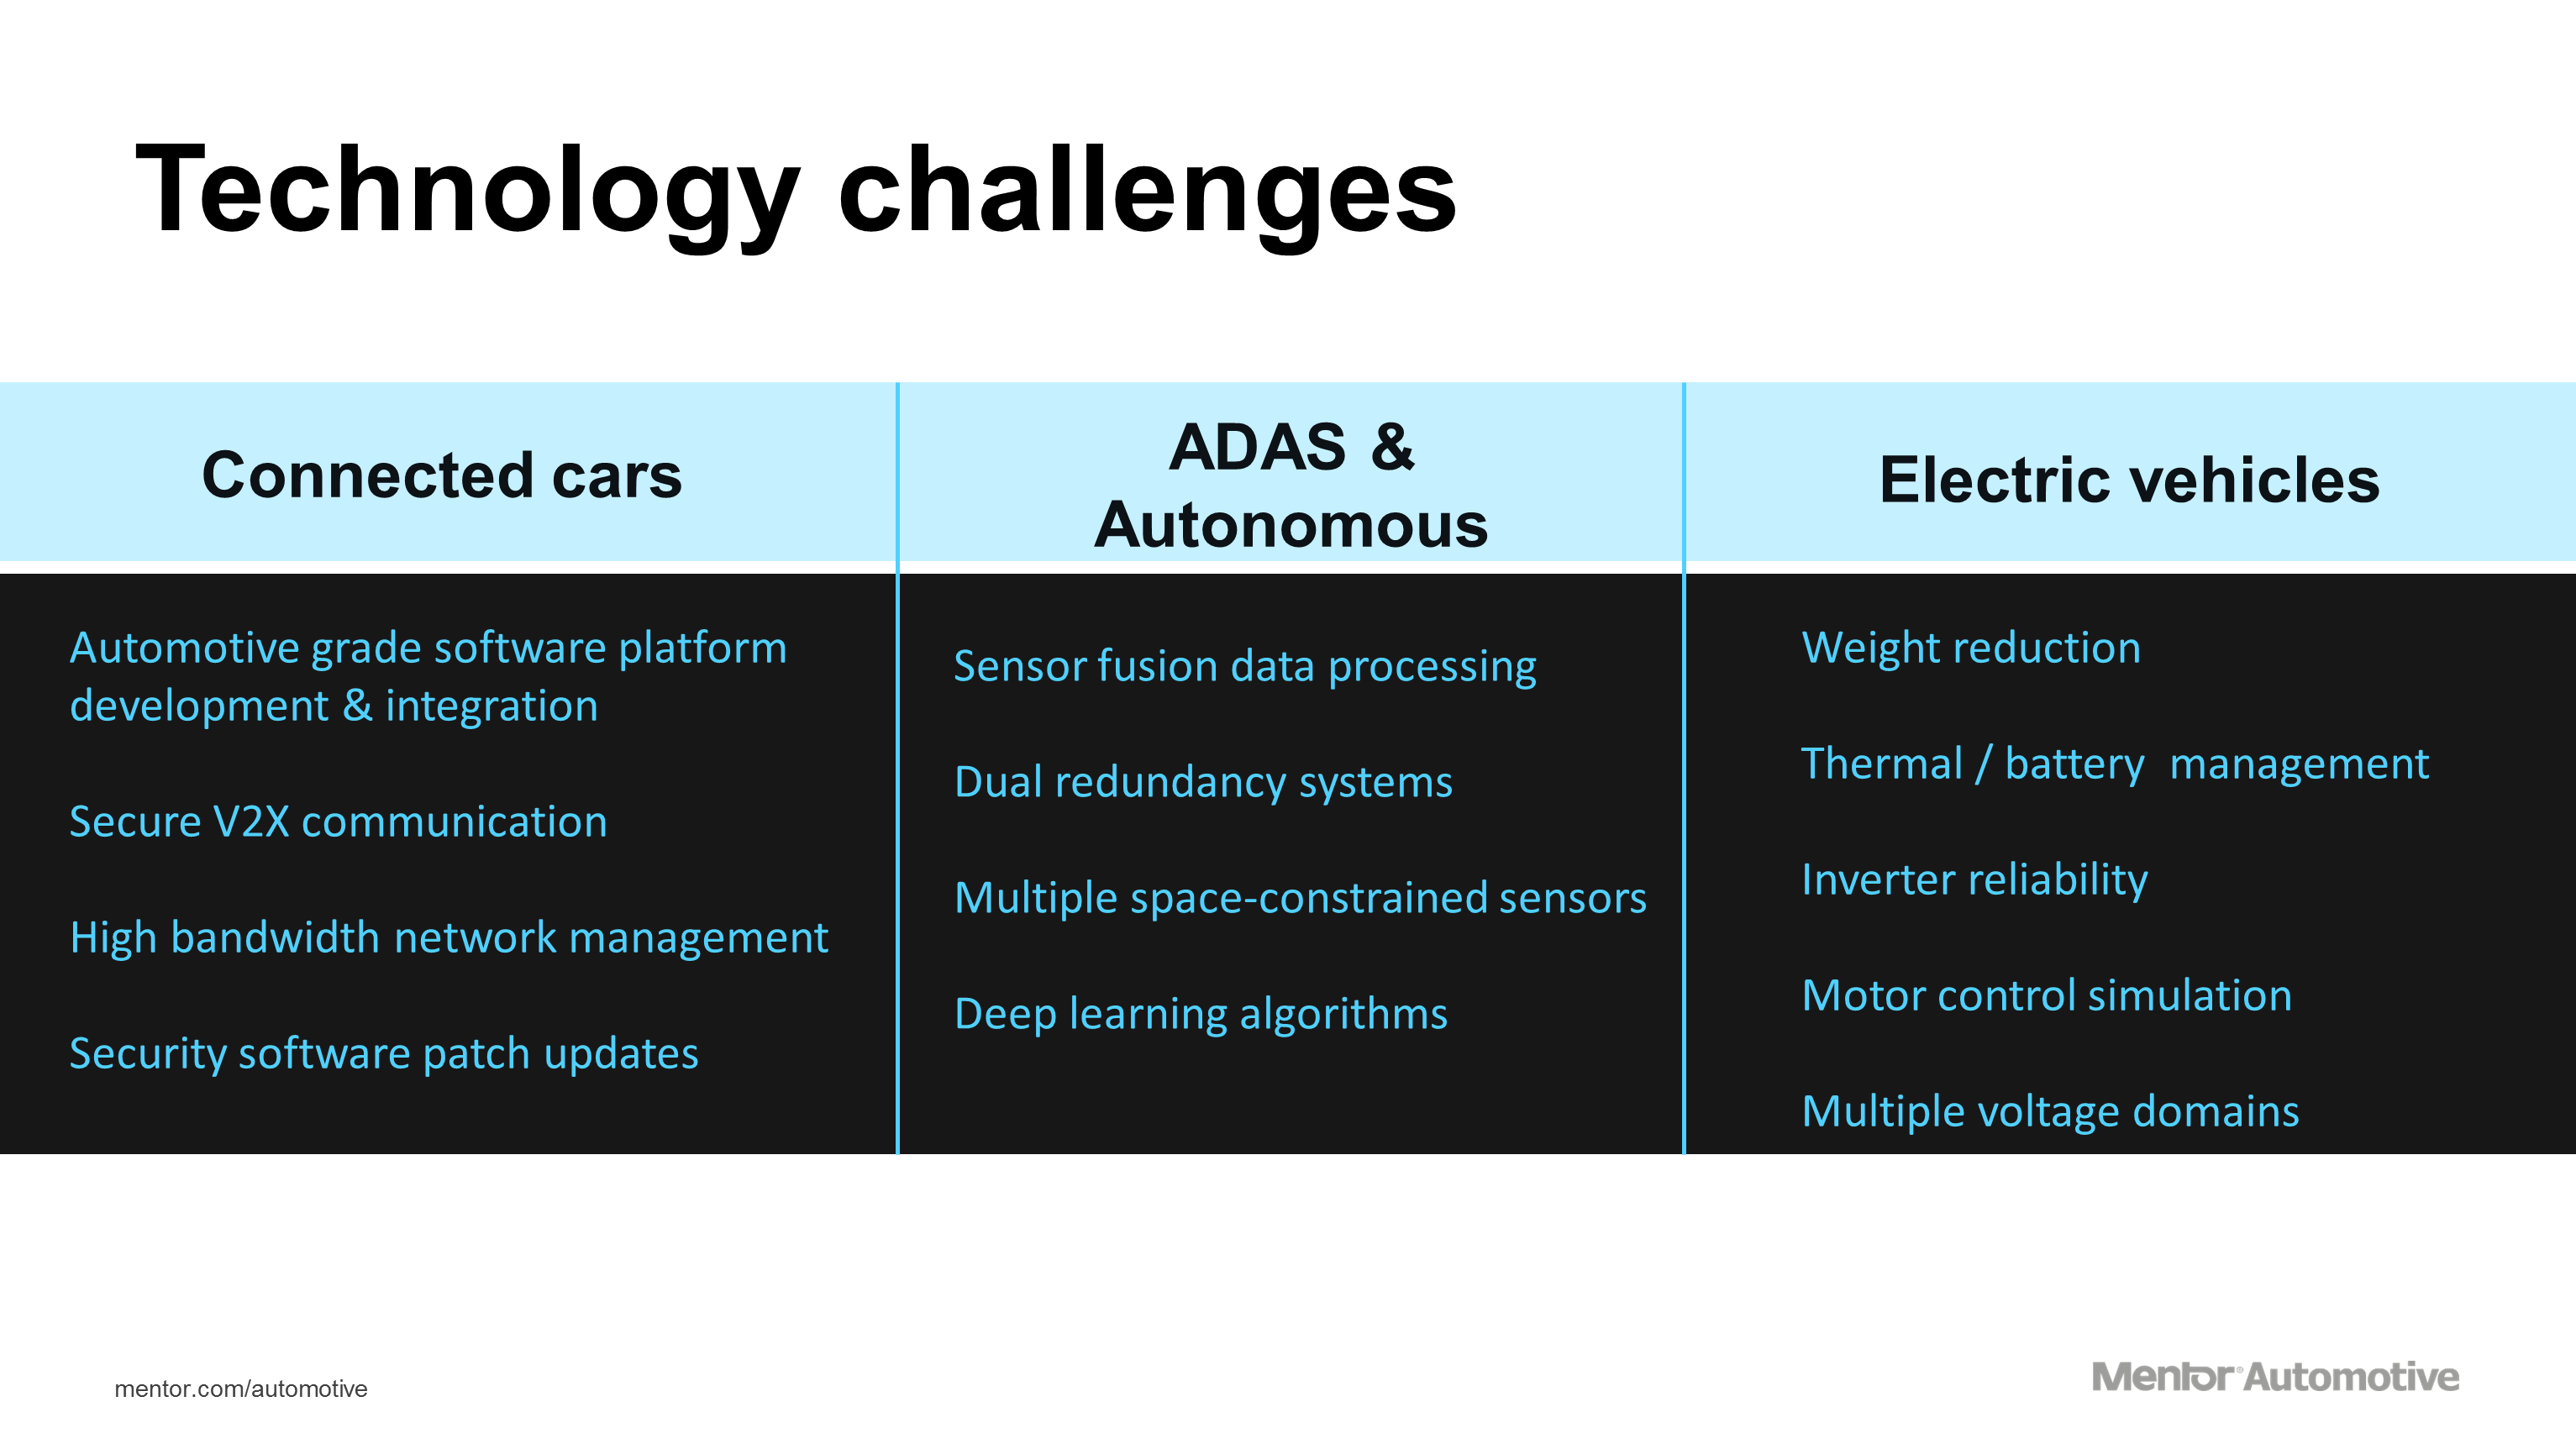 technology-challenges-mentor-automotive